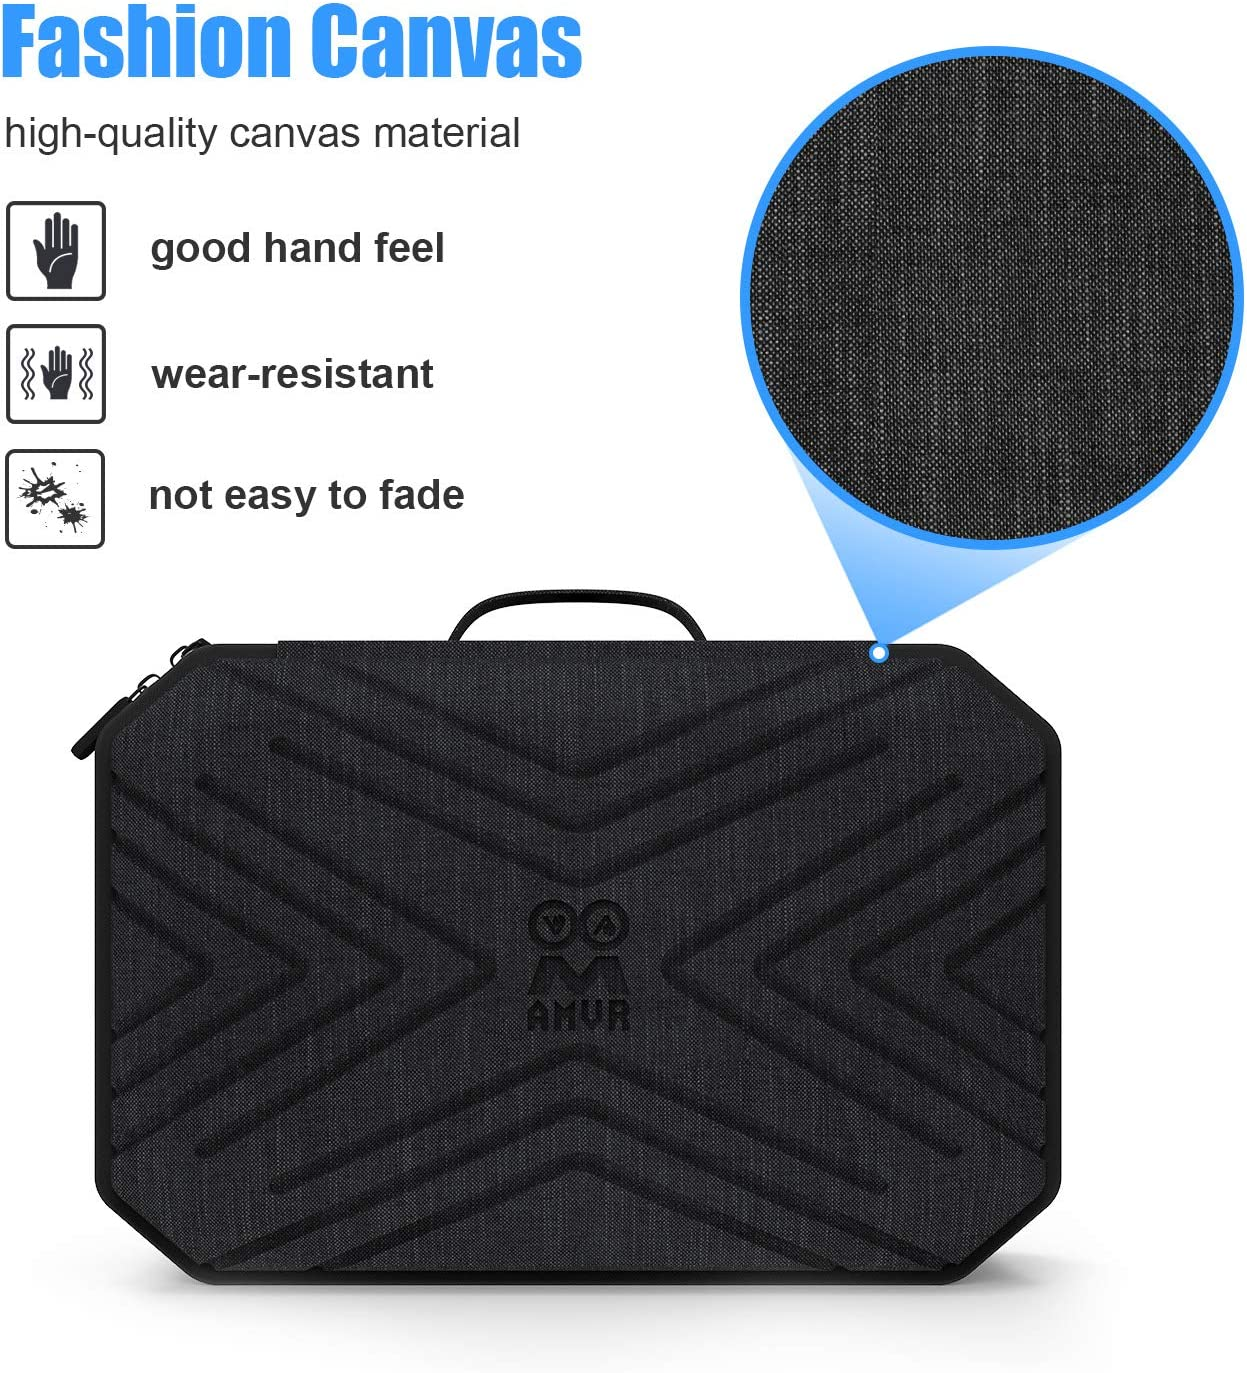 Pinson Hard Carrying Case for Oculus Quest 2 VR Gaming Headset and Controllers Accessories, Portable Fashion Travel Case with Shoulder Strap (Black)